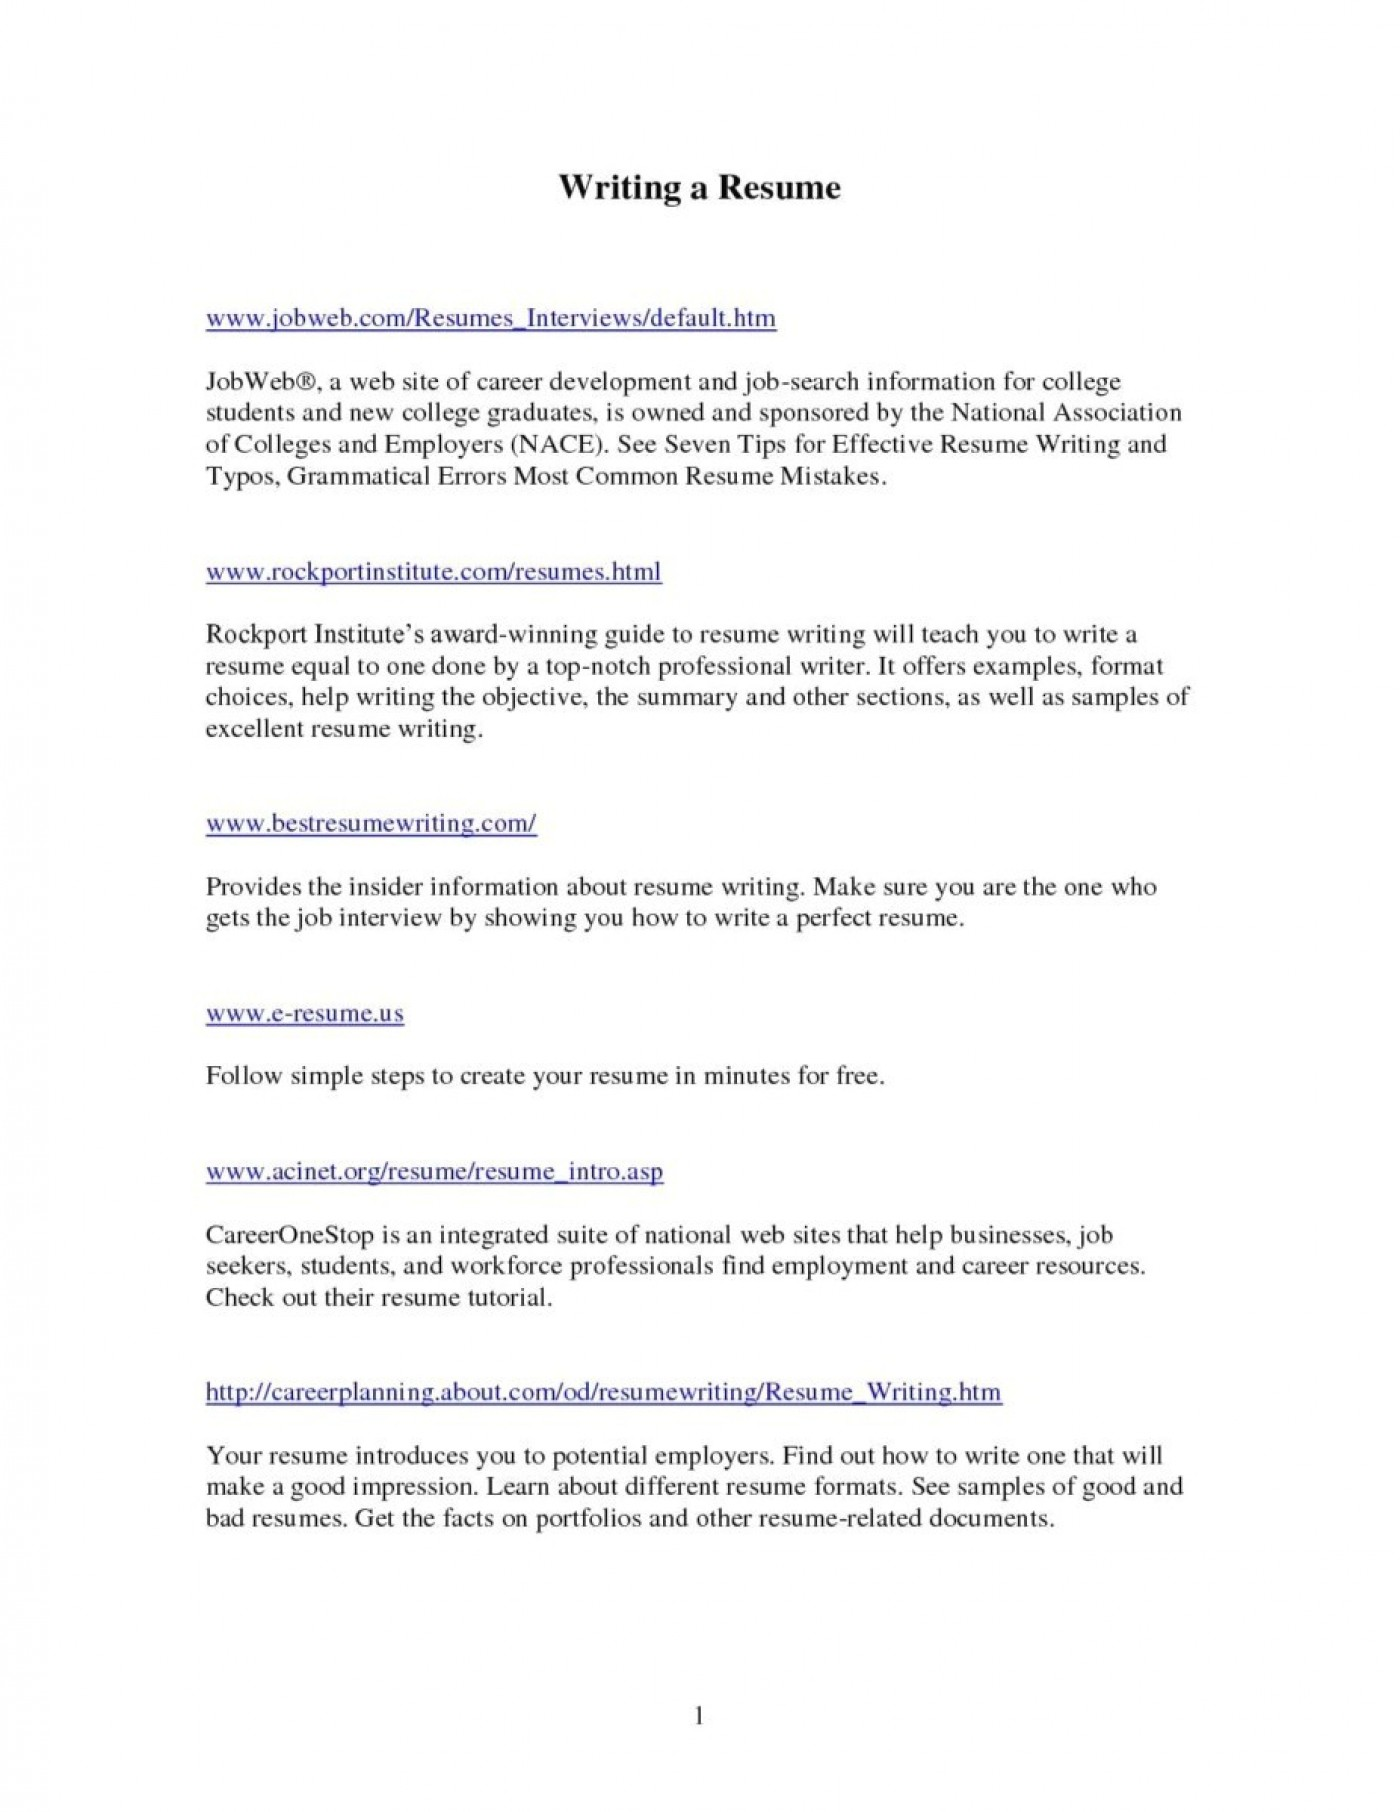 021 Resume Writing Service Reviews Format Best Writers Inspirational Help Professional Of Free Services How To Write Good Apa Research Unique A Paper Psychology Outline Do You 1400